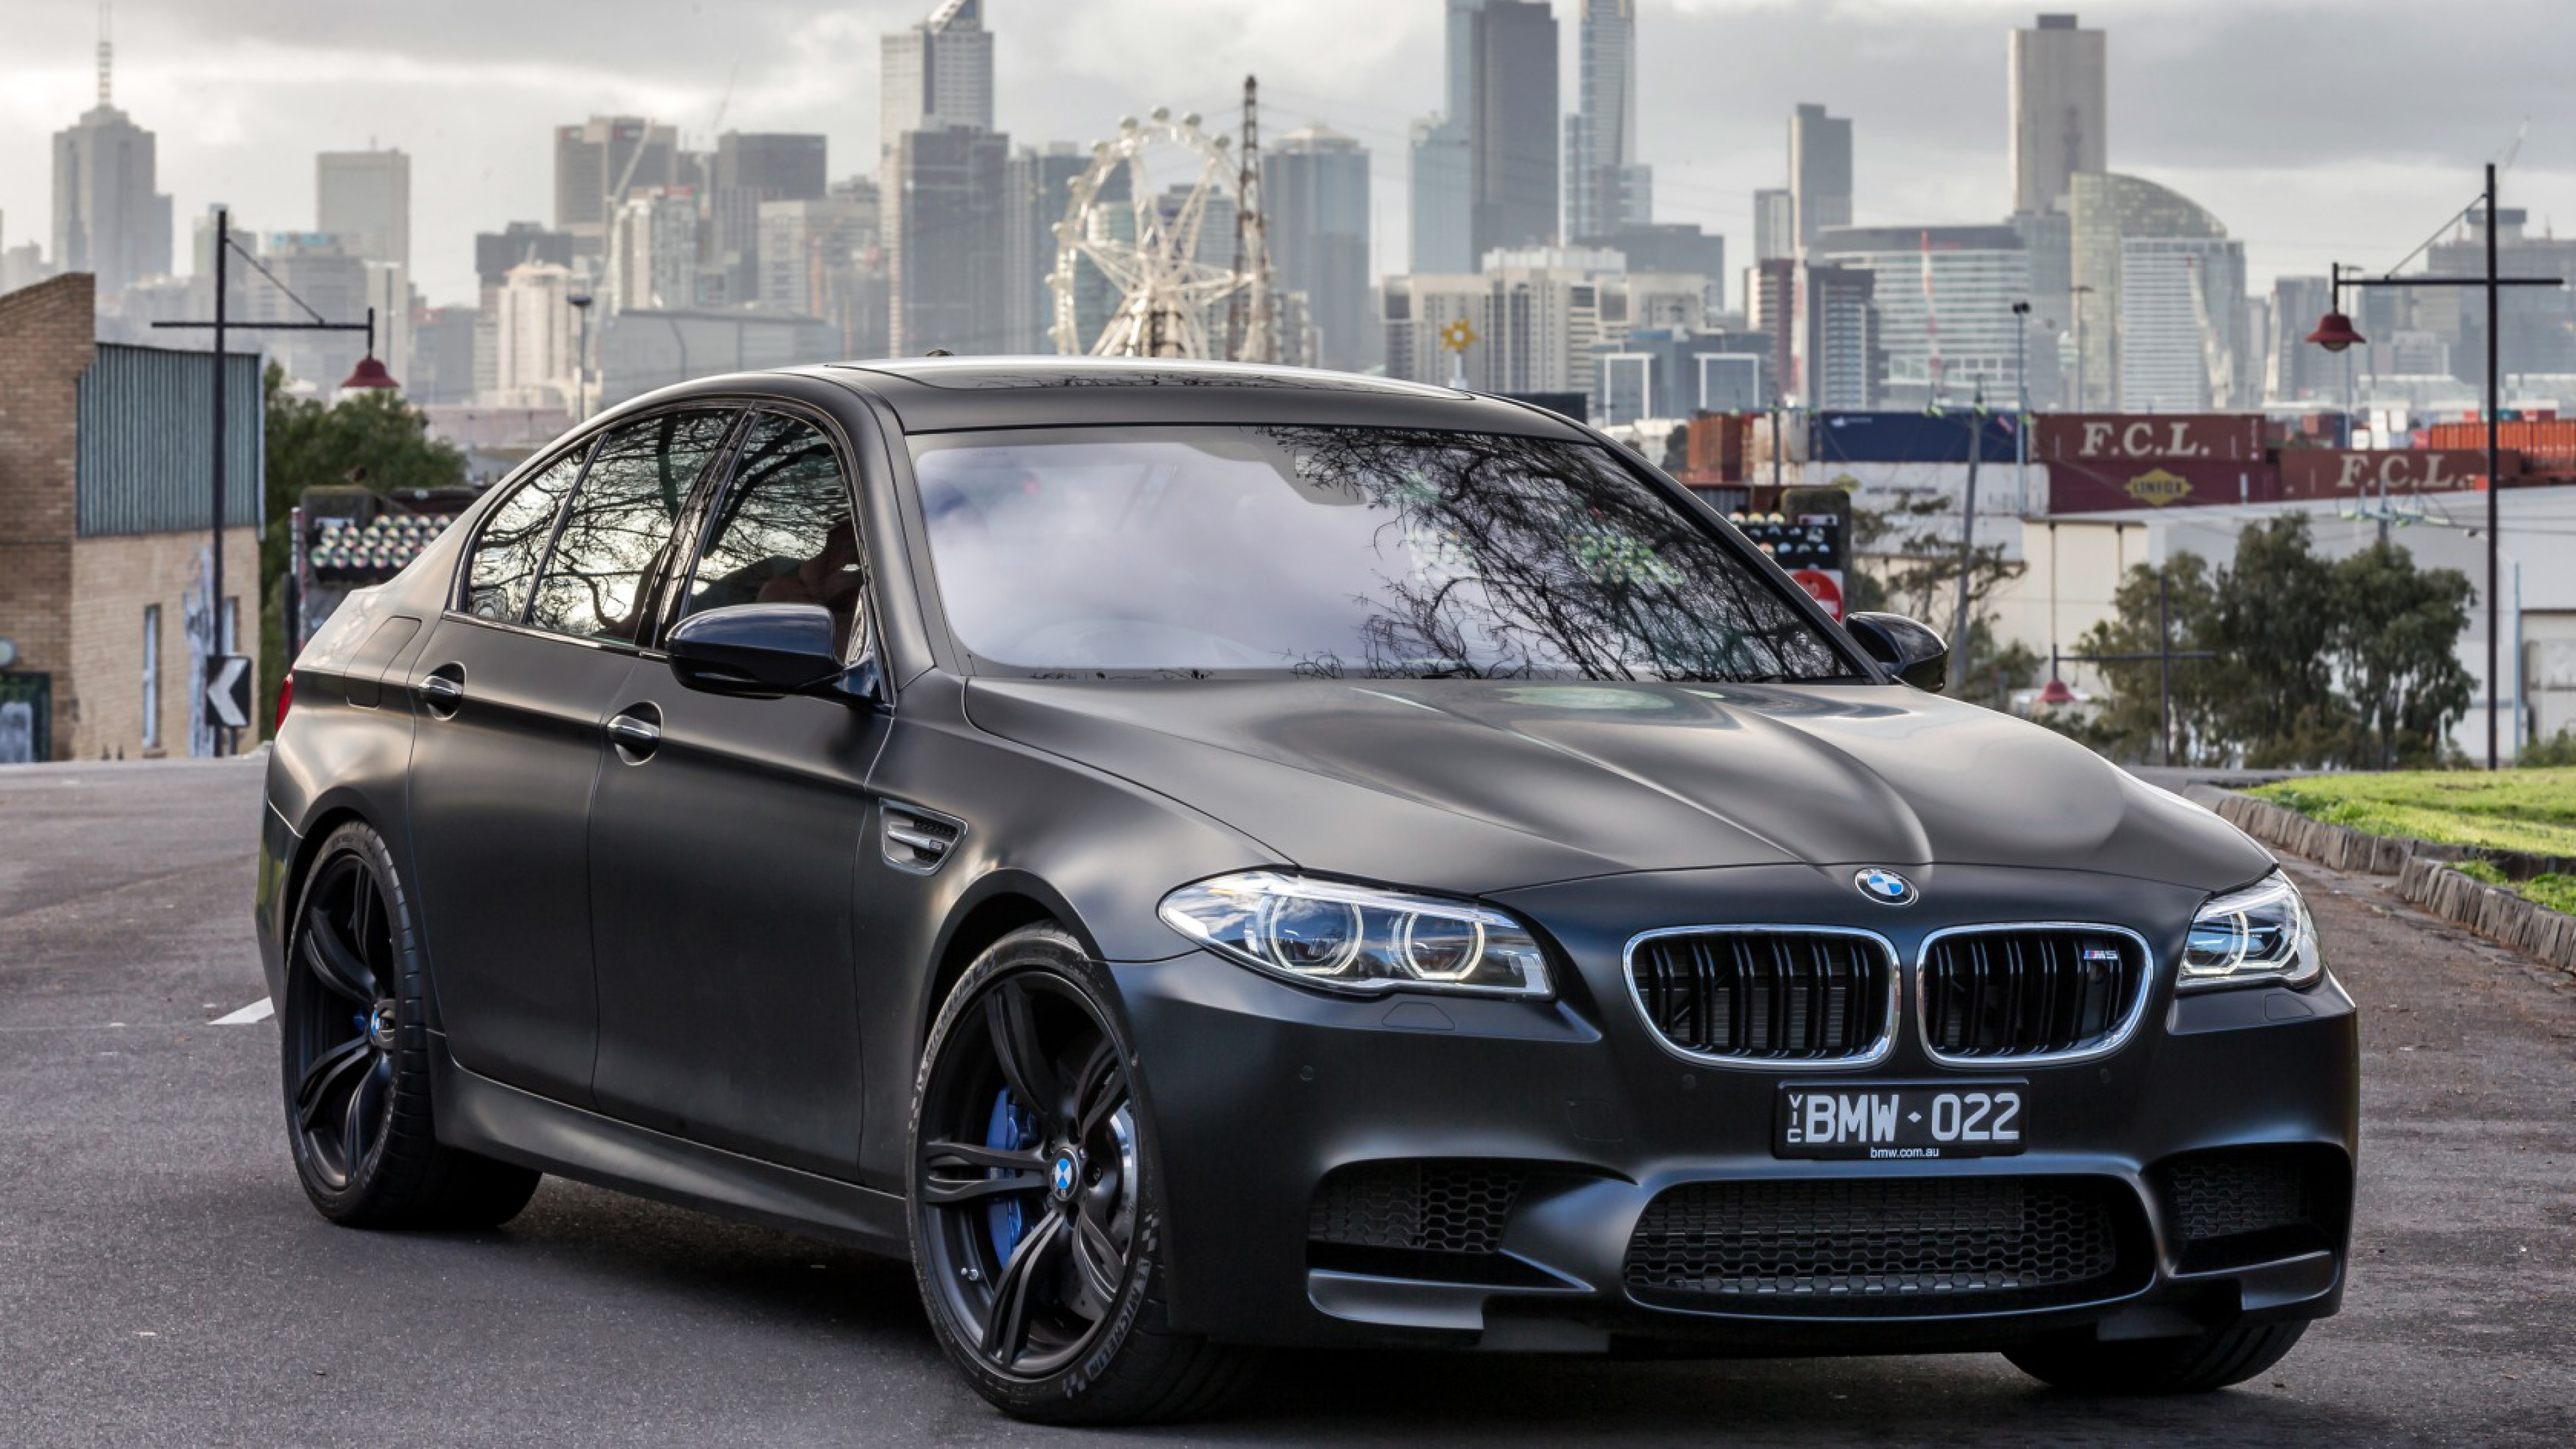 Bmw M5 Black, HD Cars, 4k Wallpapers, Images, Backgrounds ...